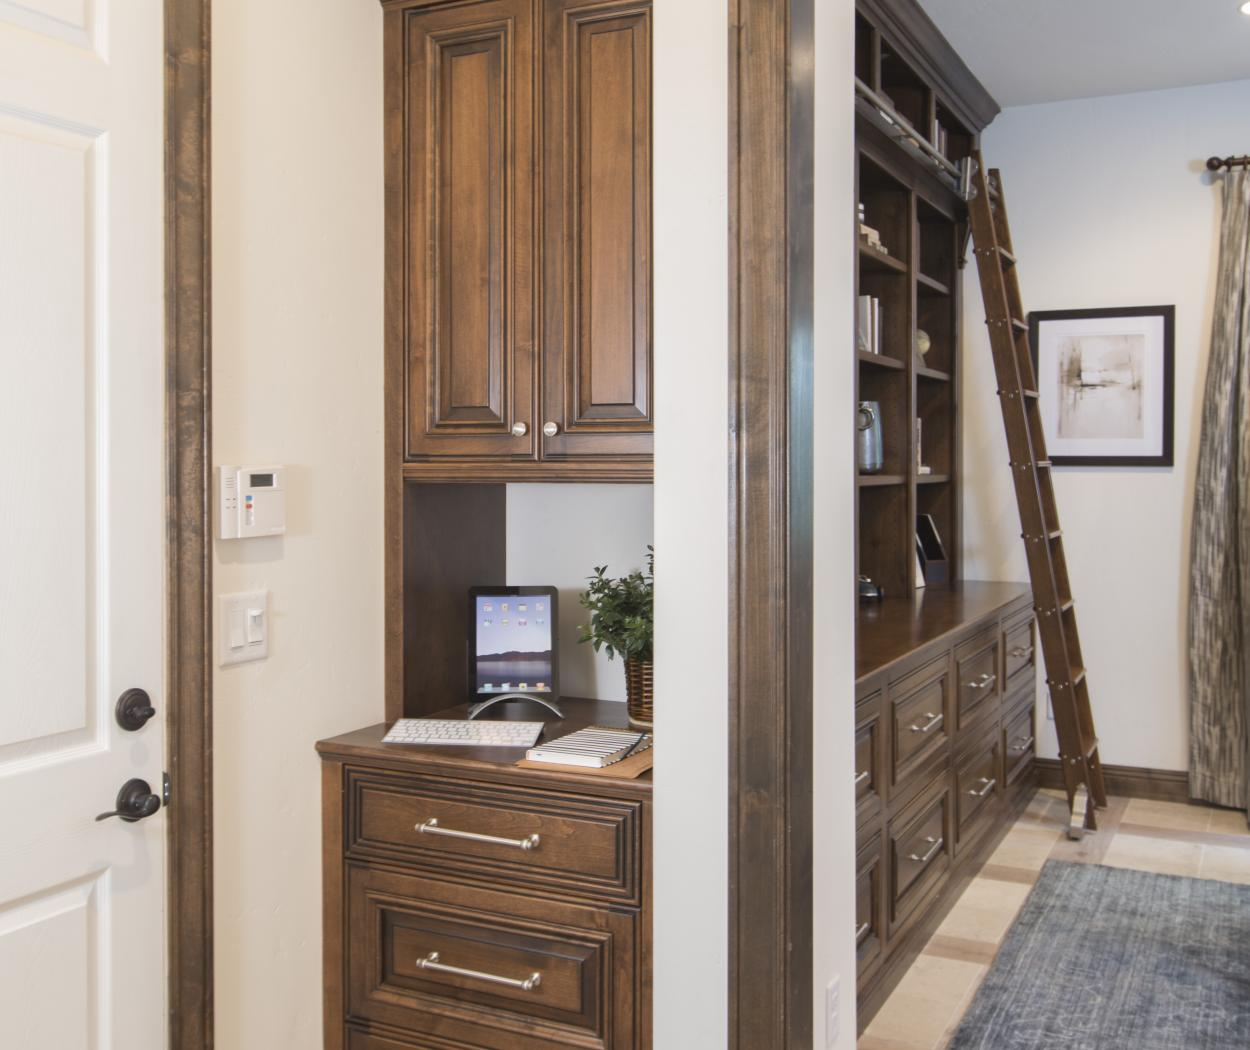 Beautiful Traditional Built-In with Stainless Steel Knobs and Pulls